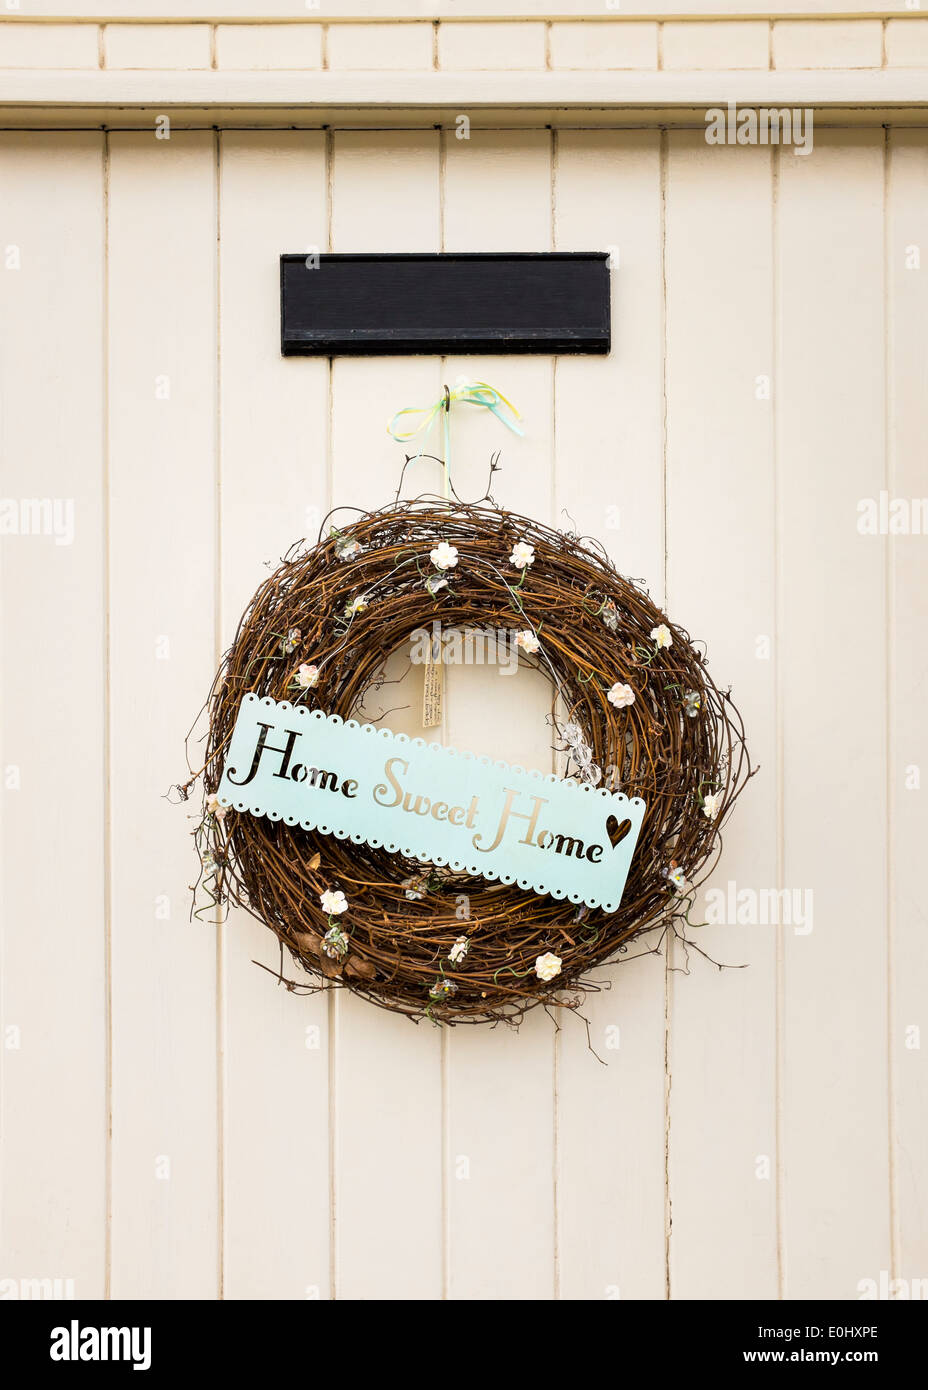 A 'Home Sweet Home' sign/wreath hangs on an English door in the village of Dunster, Devon, England - Stock Image